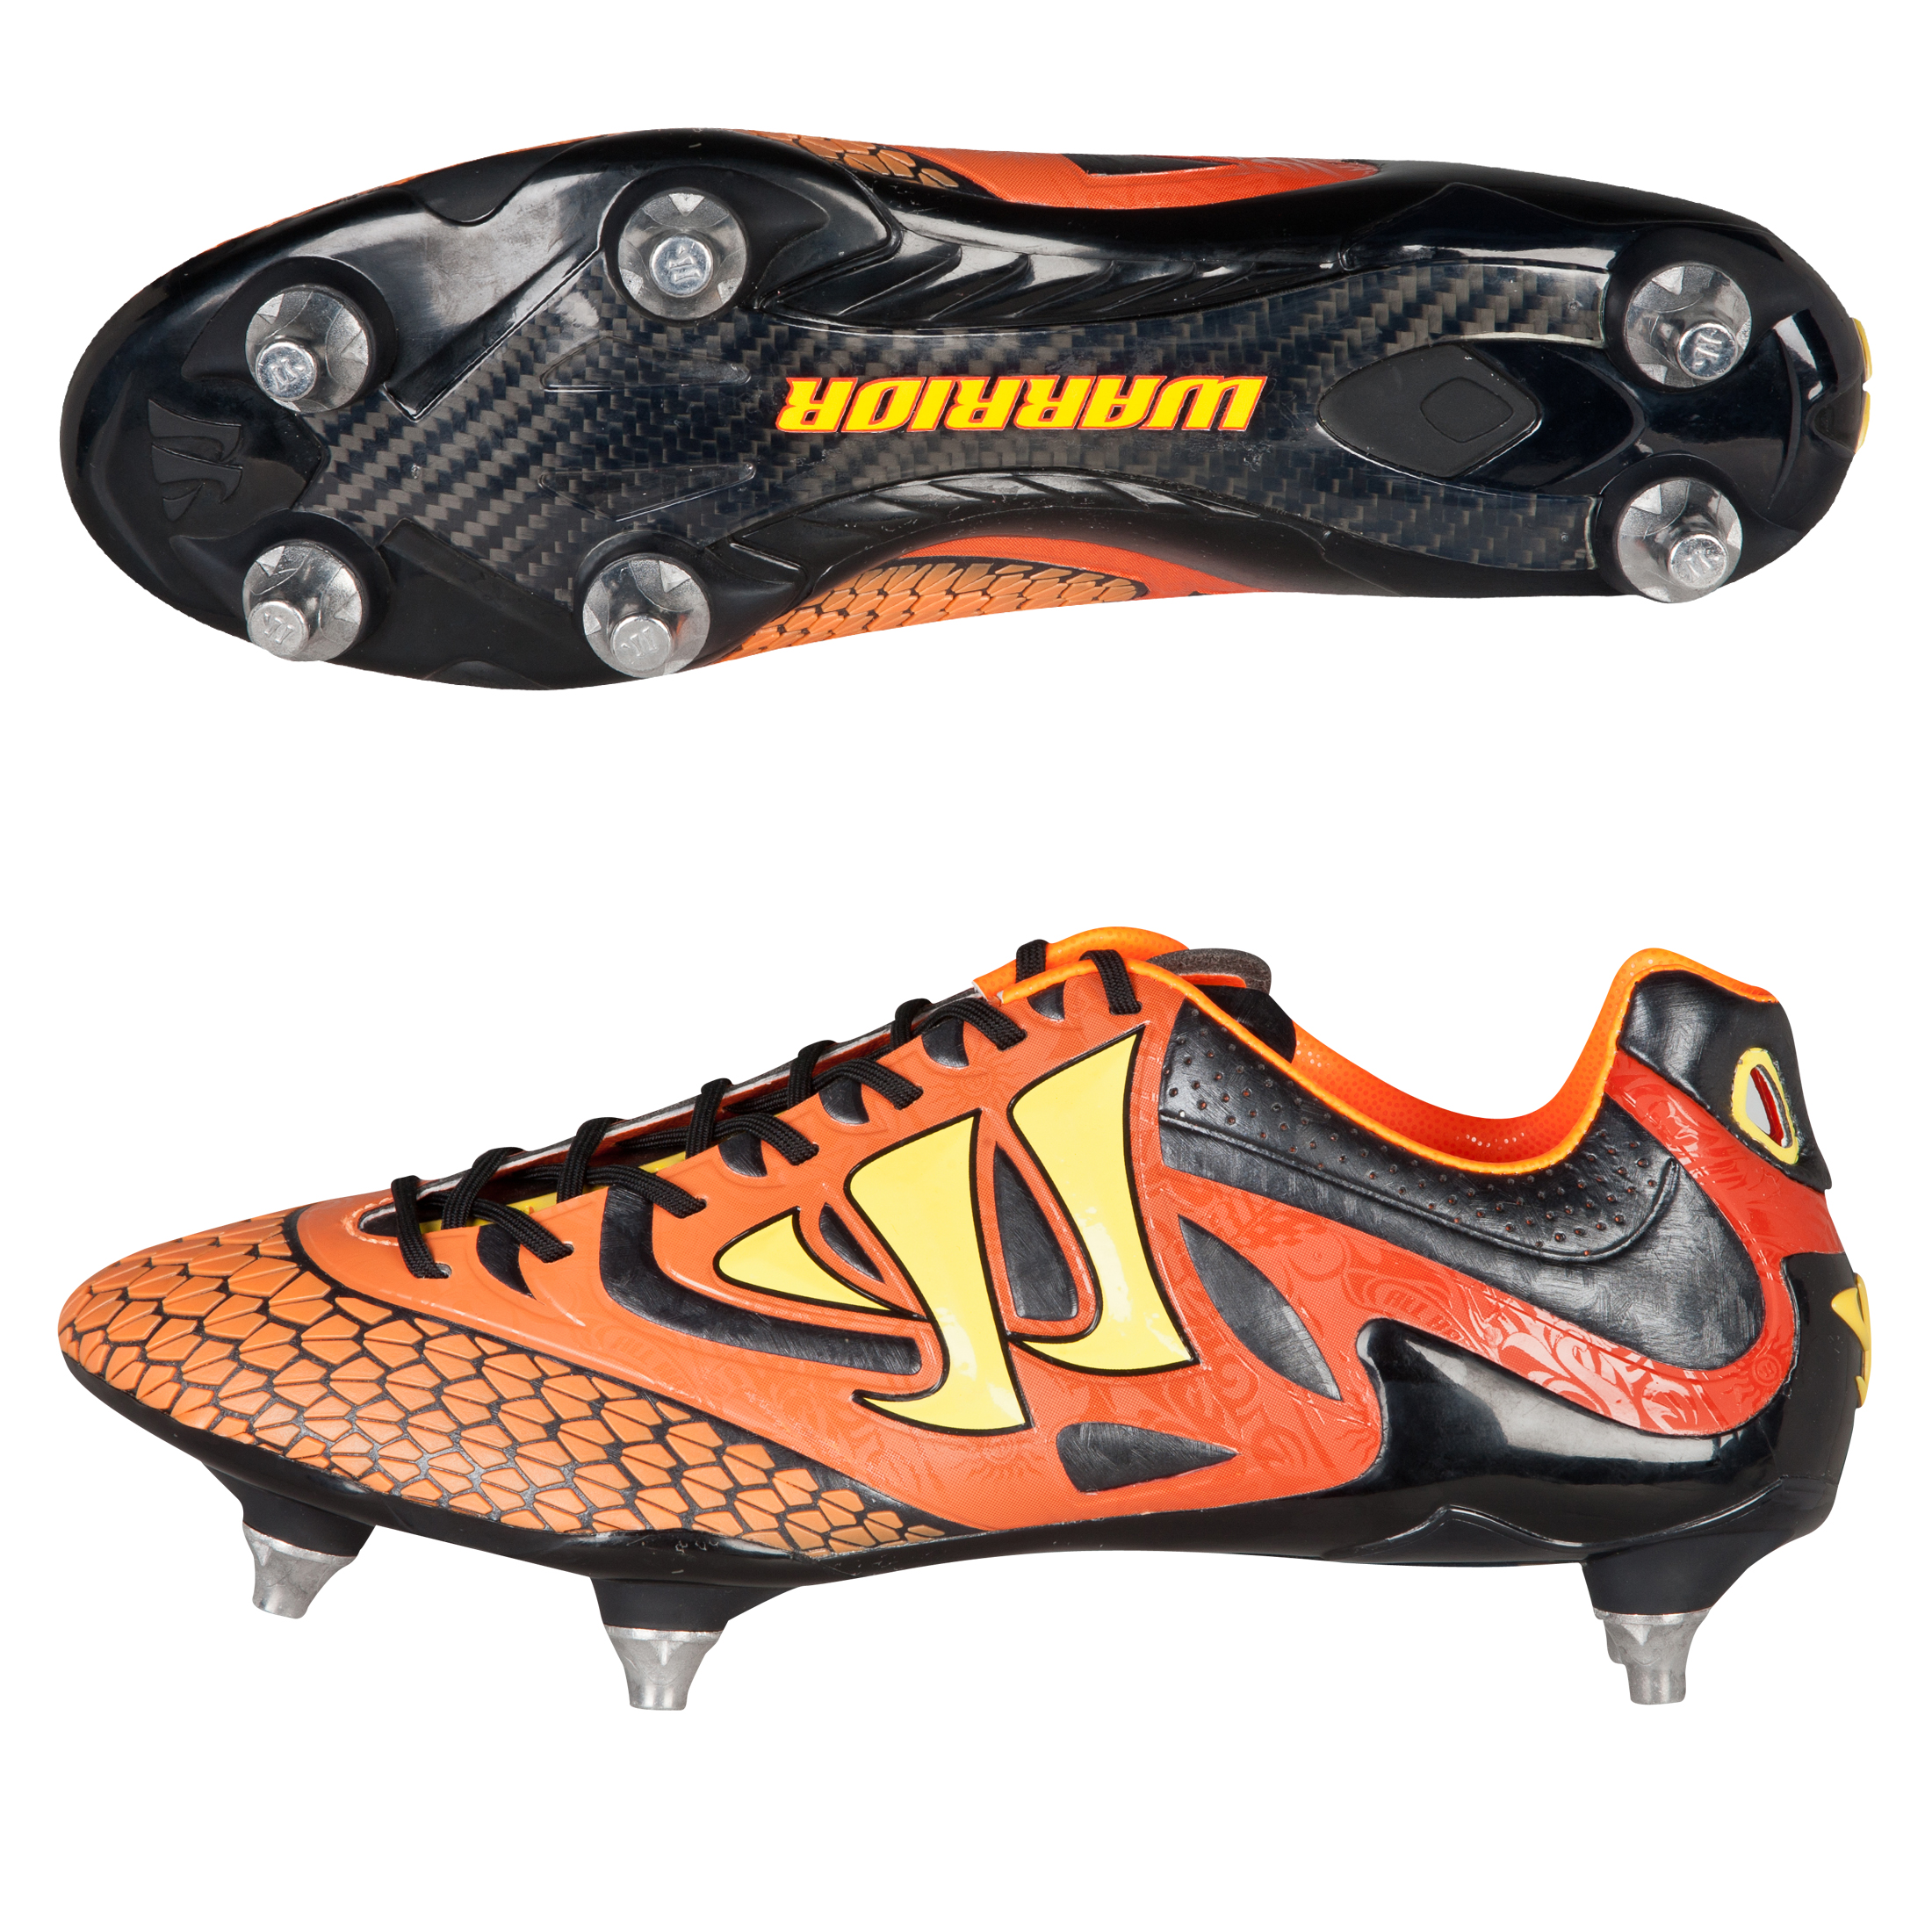 Warrior Sports Skreamer S-Lite Soft Ground Football Boots-Ebony/Orange/Yellow Black